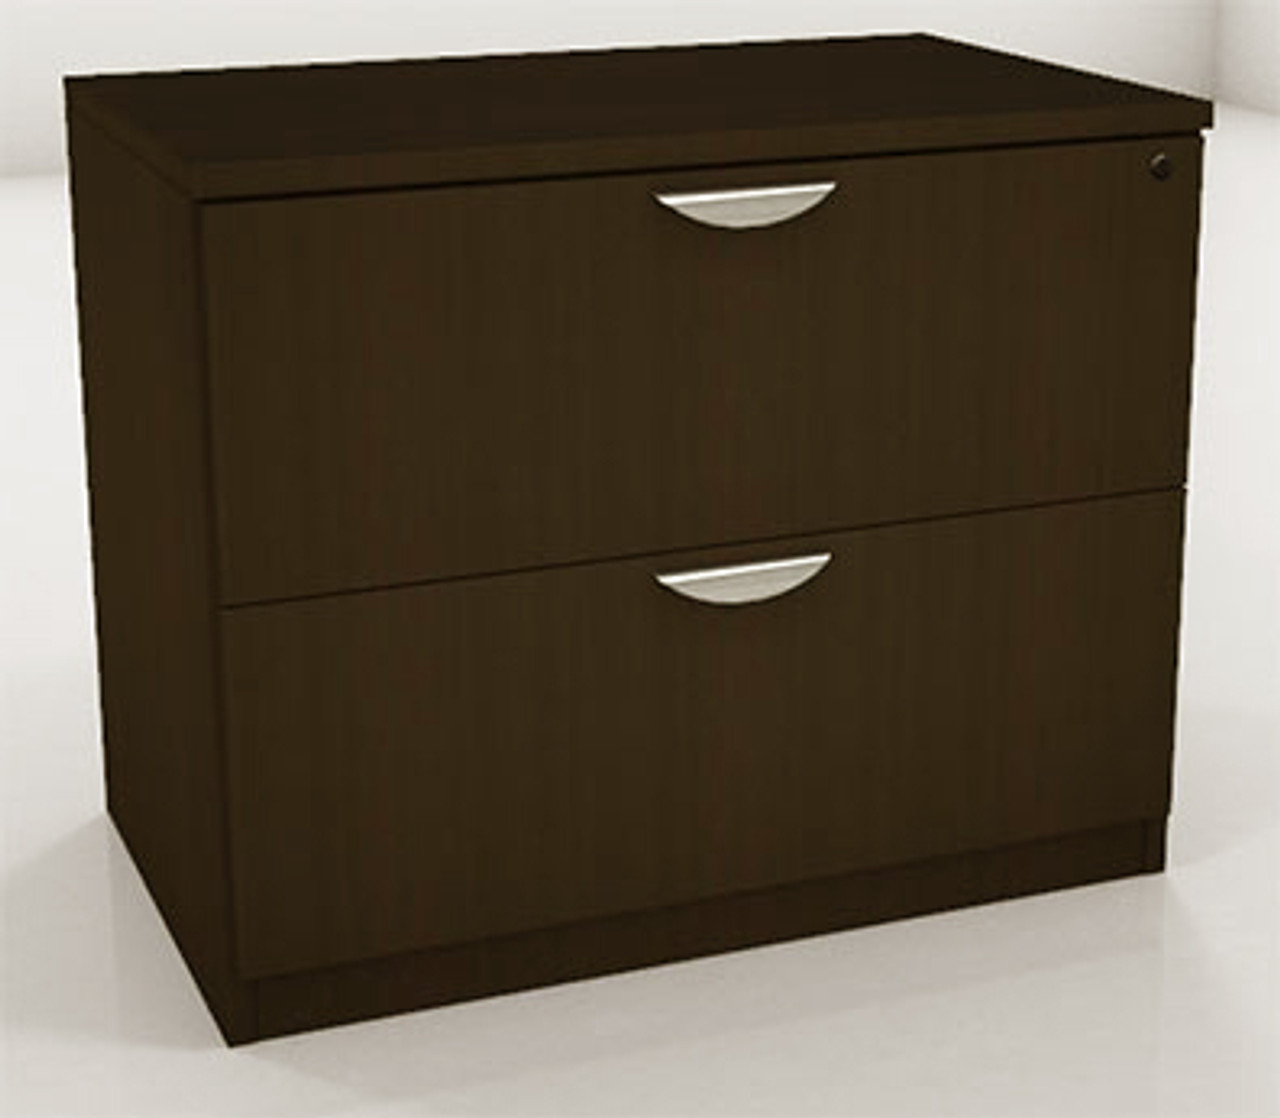 2 Drawers Lateral File Cabinet, #OT-SUL-CAB1